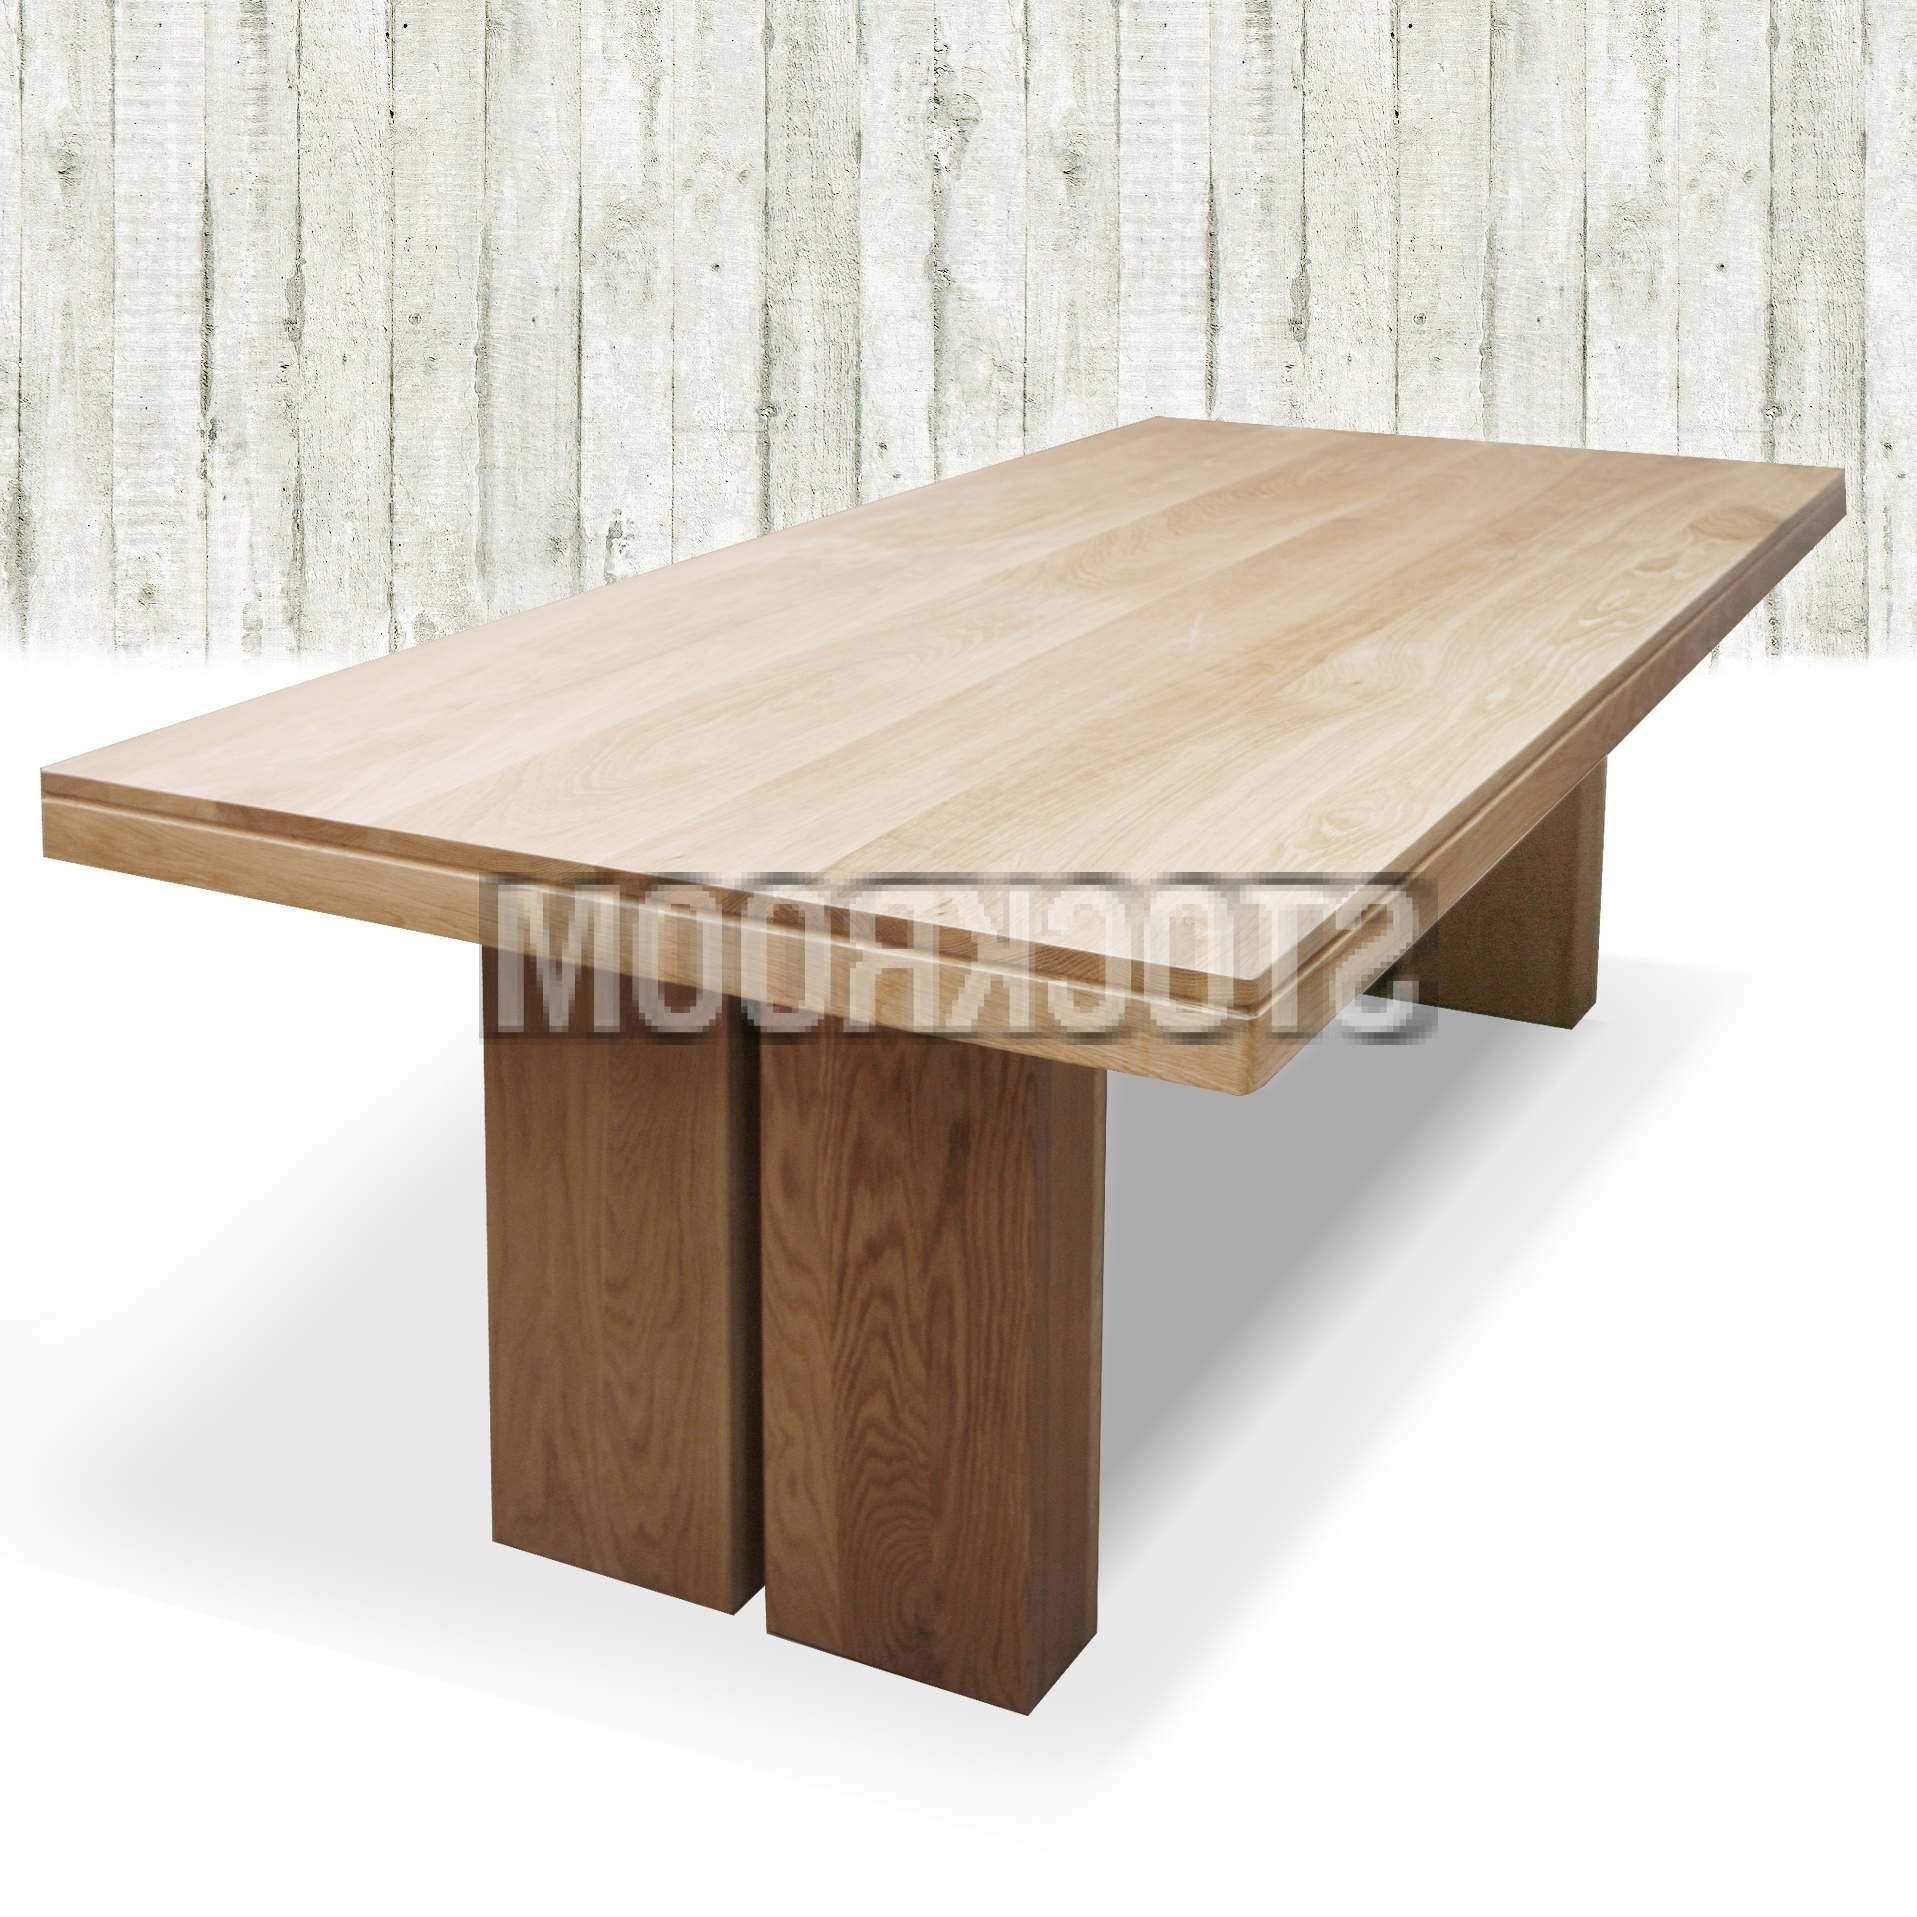 Well Known Noah Dining Tables Inside Noah Solid Oak Wood Dining Table : Stockroom Hong Kong Contemporary (View 5 of 25)